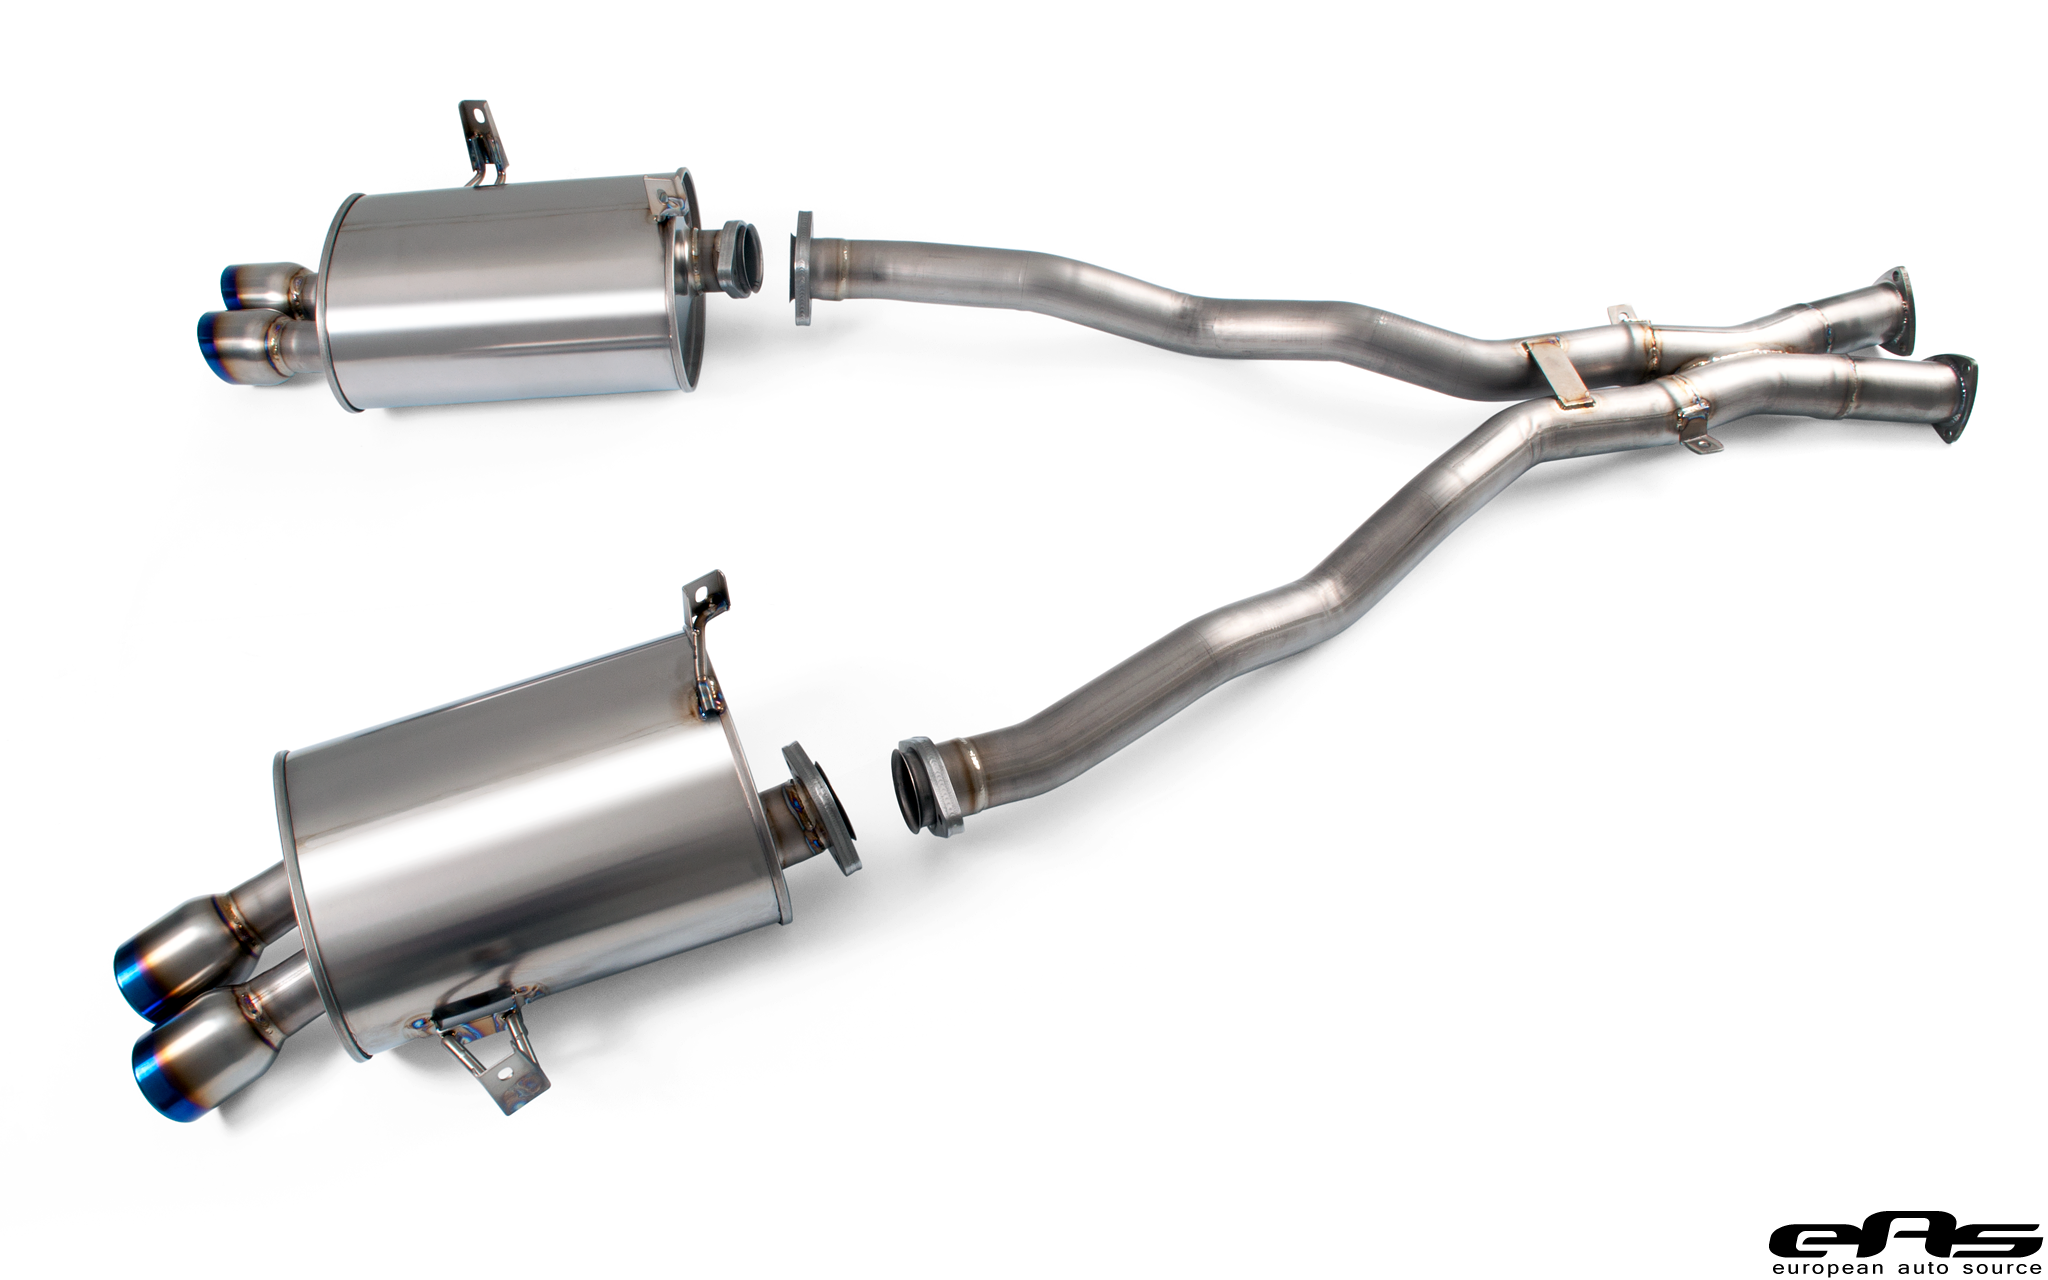 Arqray Titanium Exhaust Installed On Our Z4m Bmw Performance Parts Amp Services